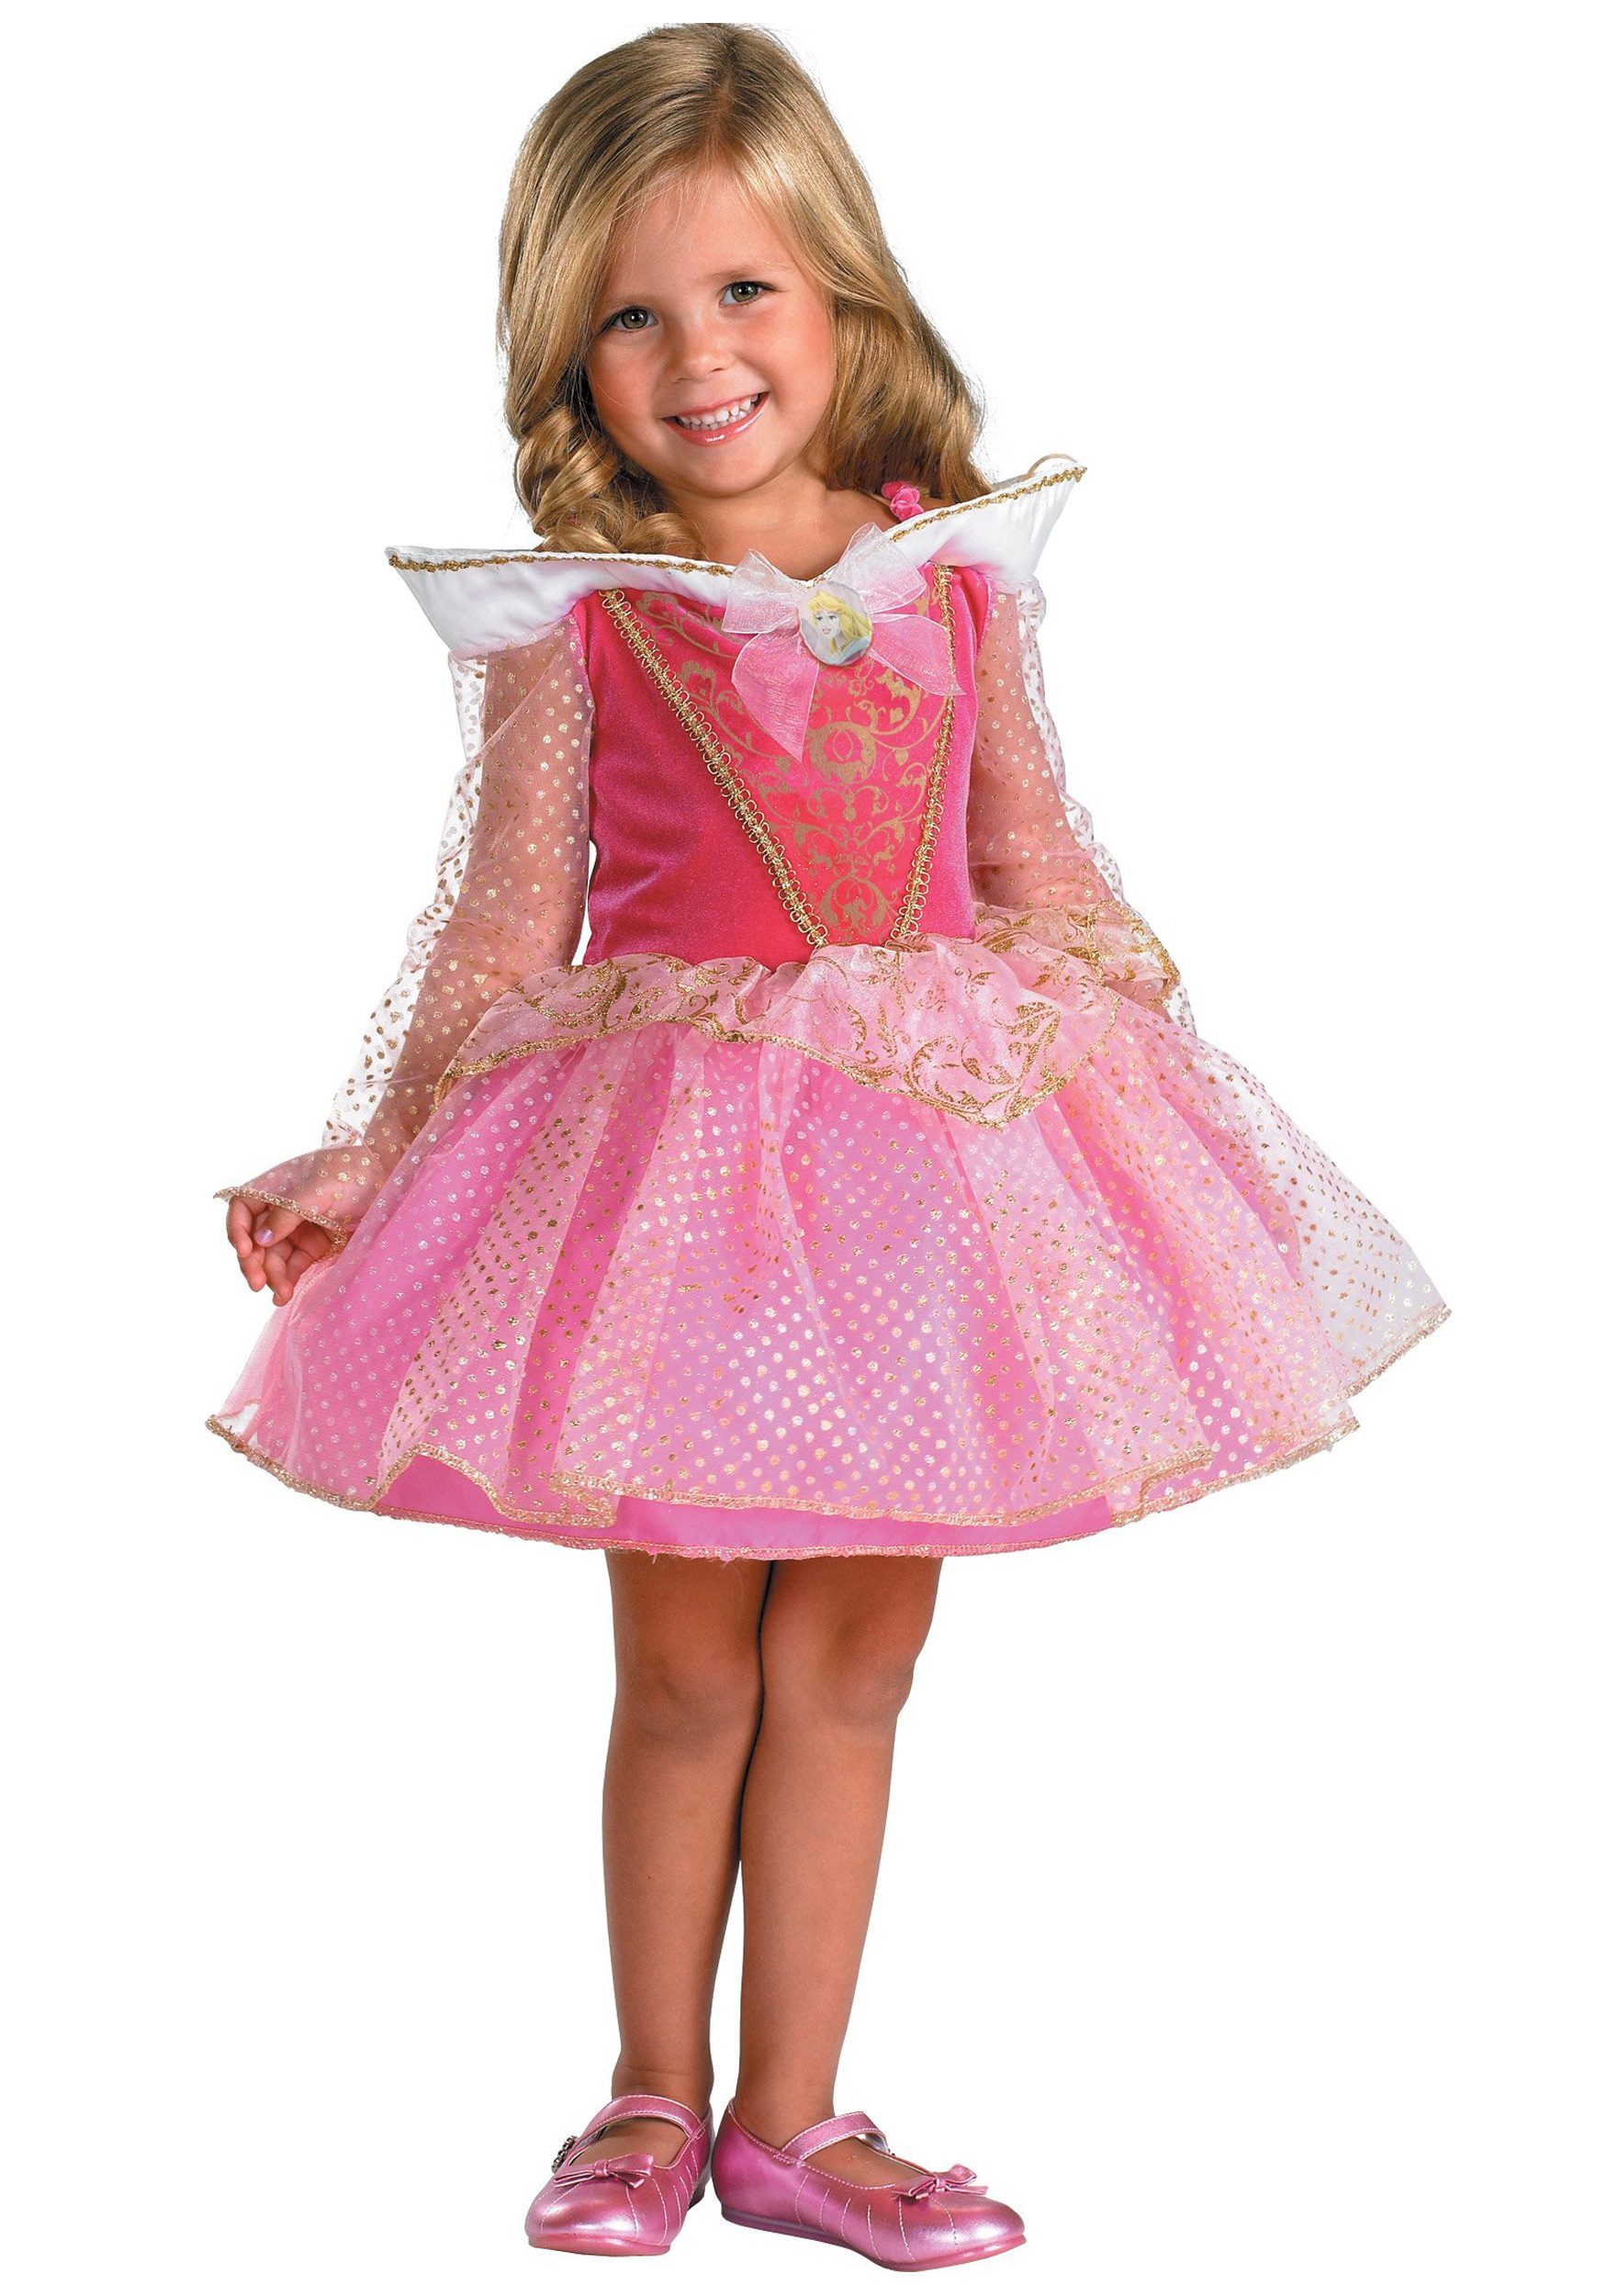 Toddler Aurora Ballerina Costume  sc 1 st  Halloween Costumes & Toddler Aurora Ballerina Costume - Halloween Costumes